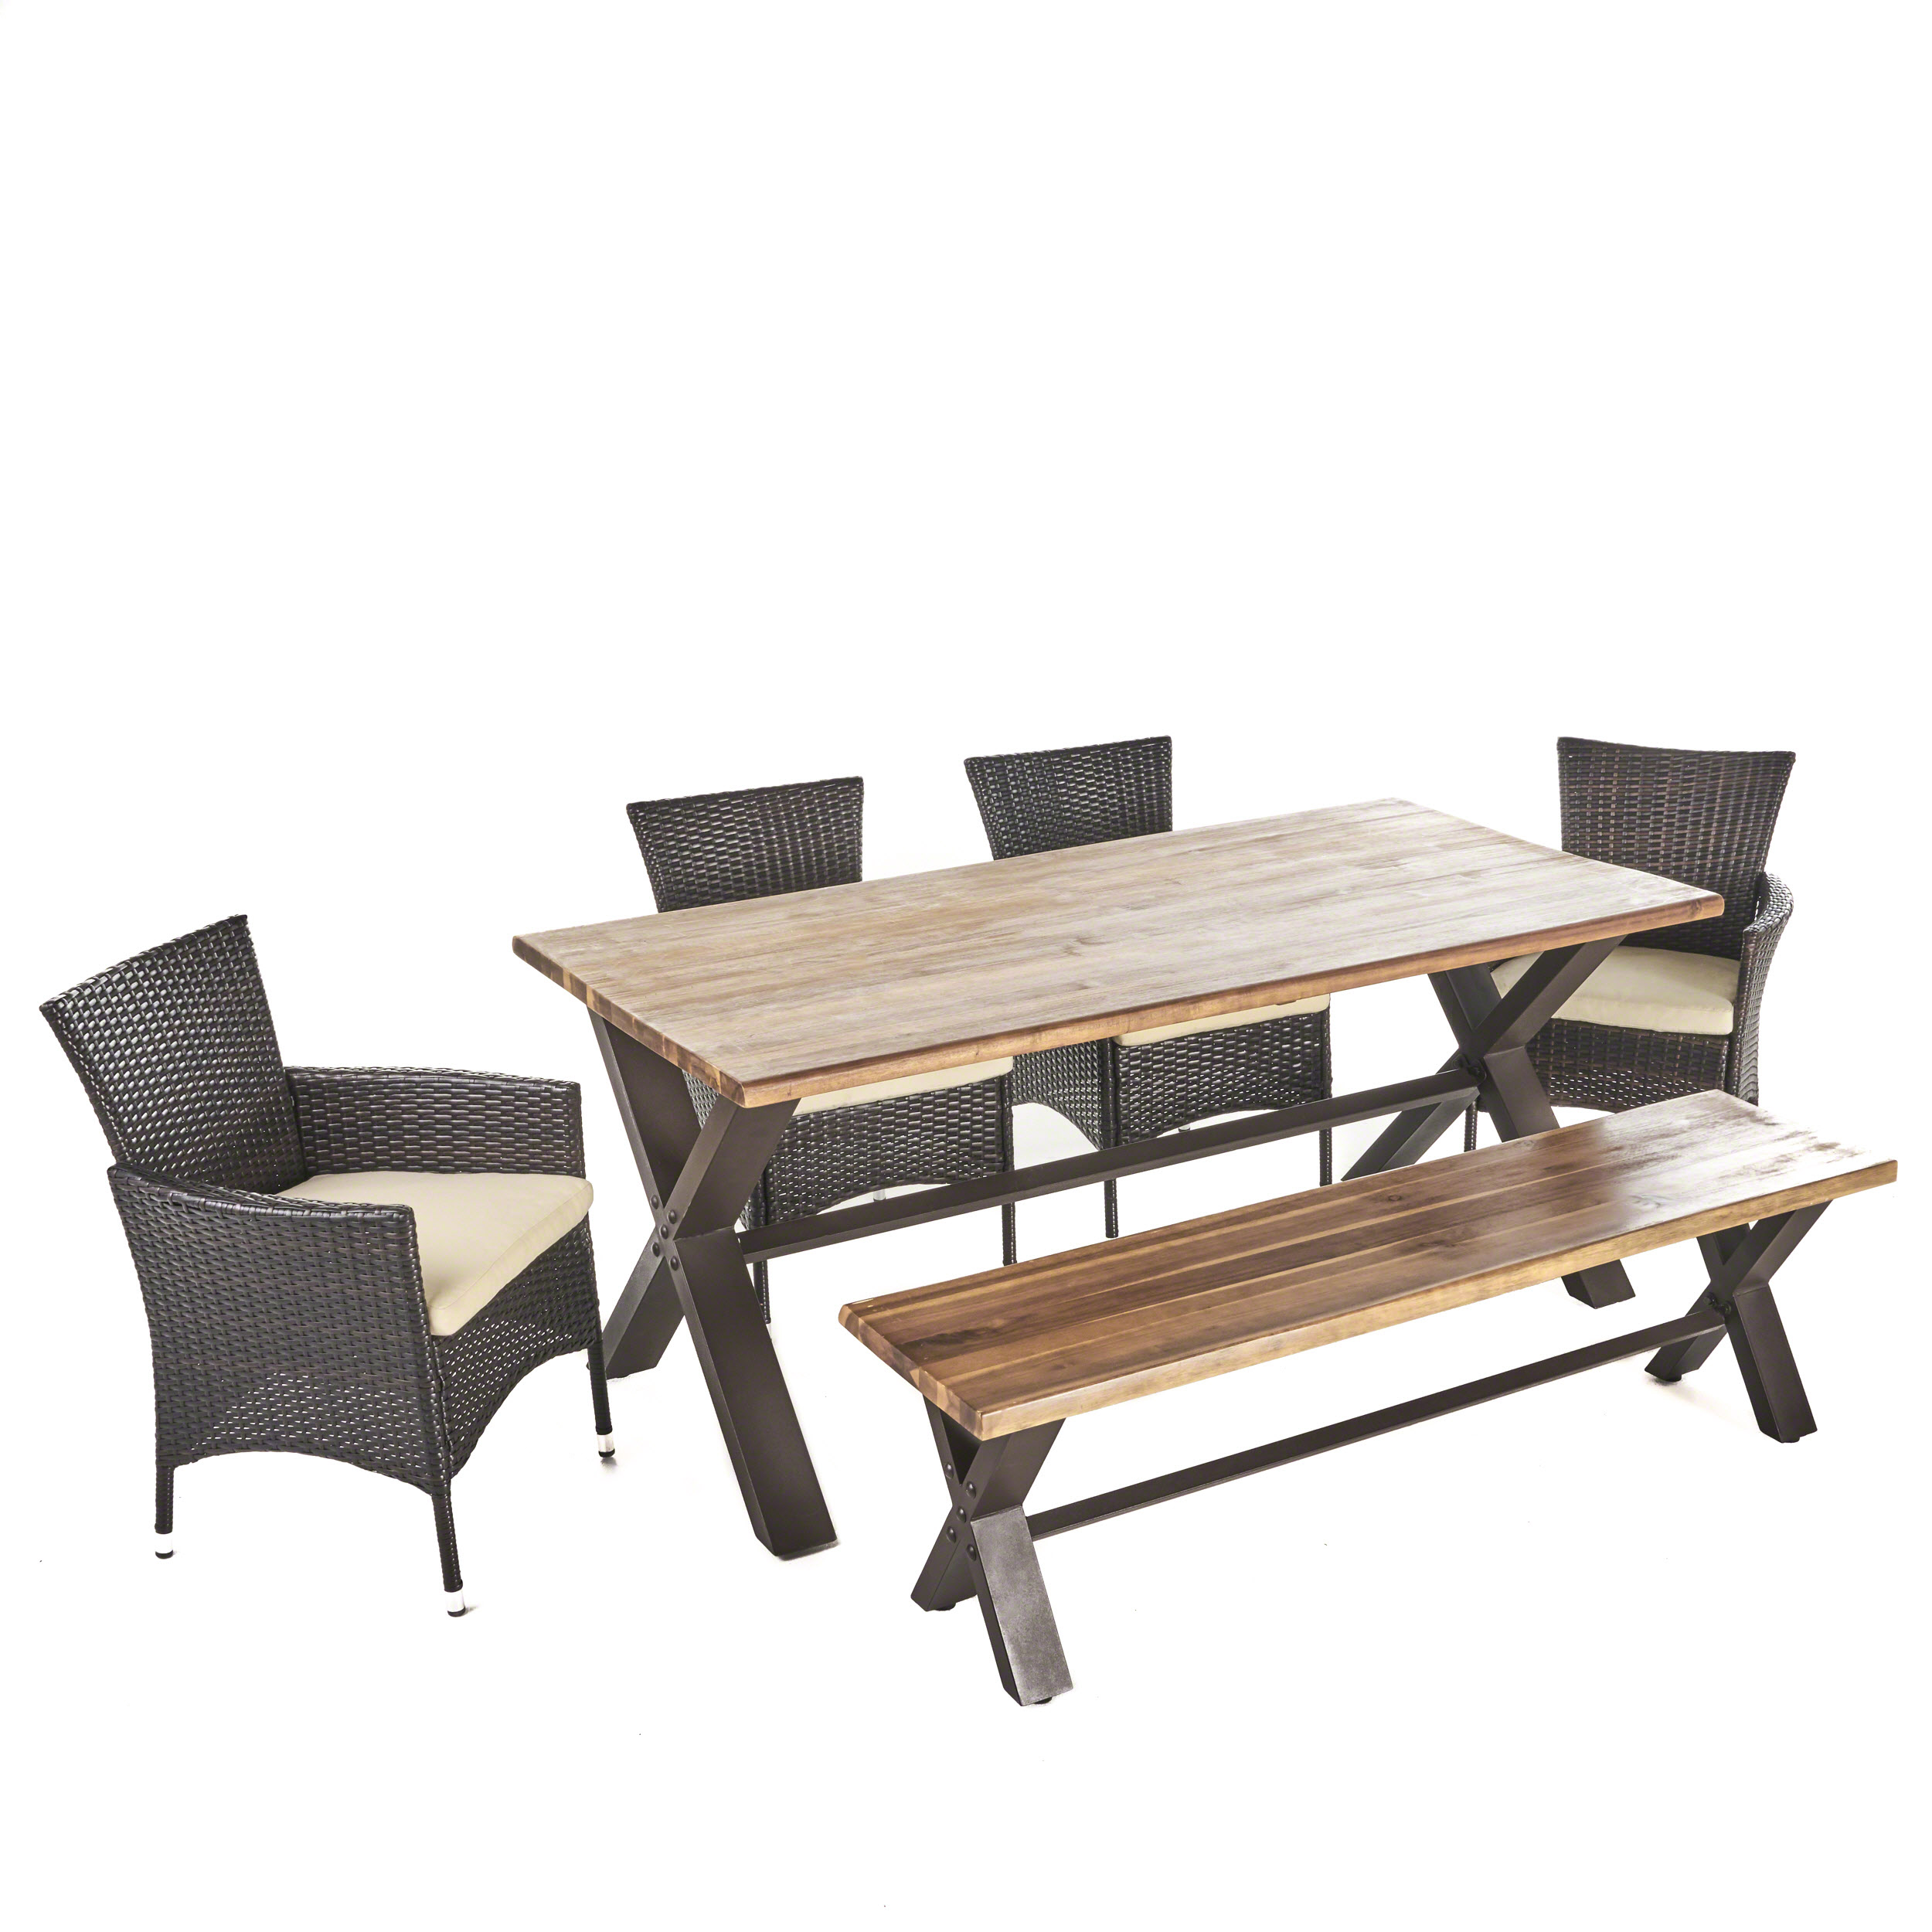 Trellis Outdoor 6 Piece Acacia Wood Dining Set with Wicker Dining Chairs and Water Resistant Cushions, Teak Finish